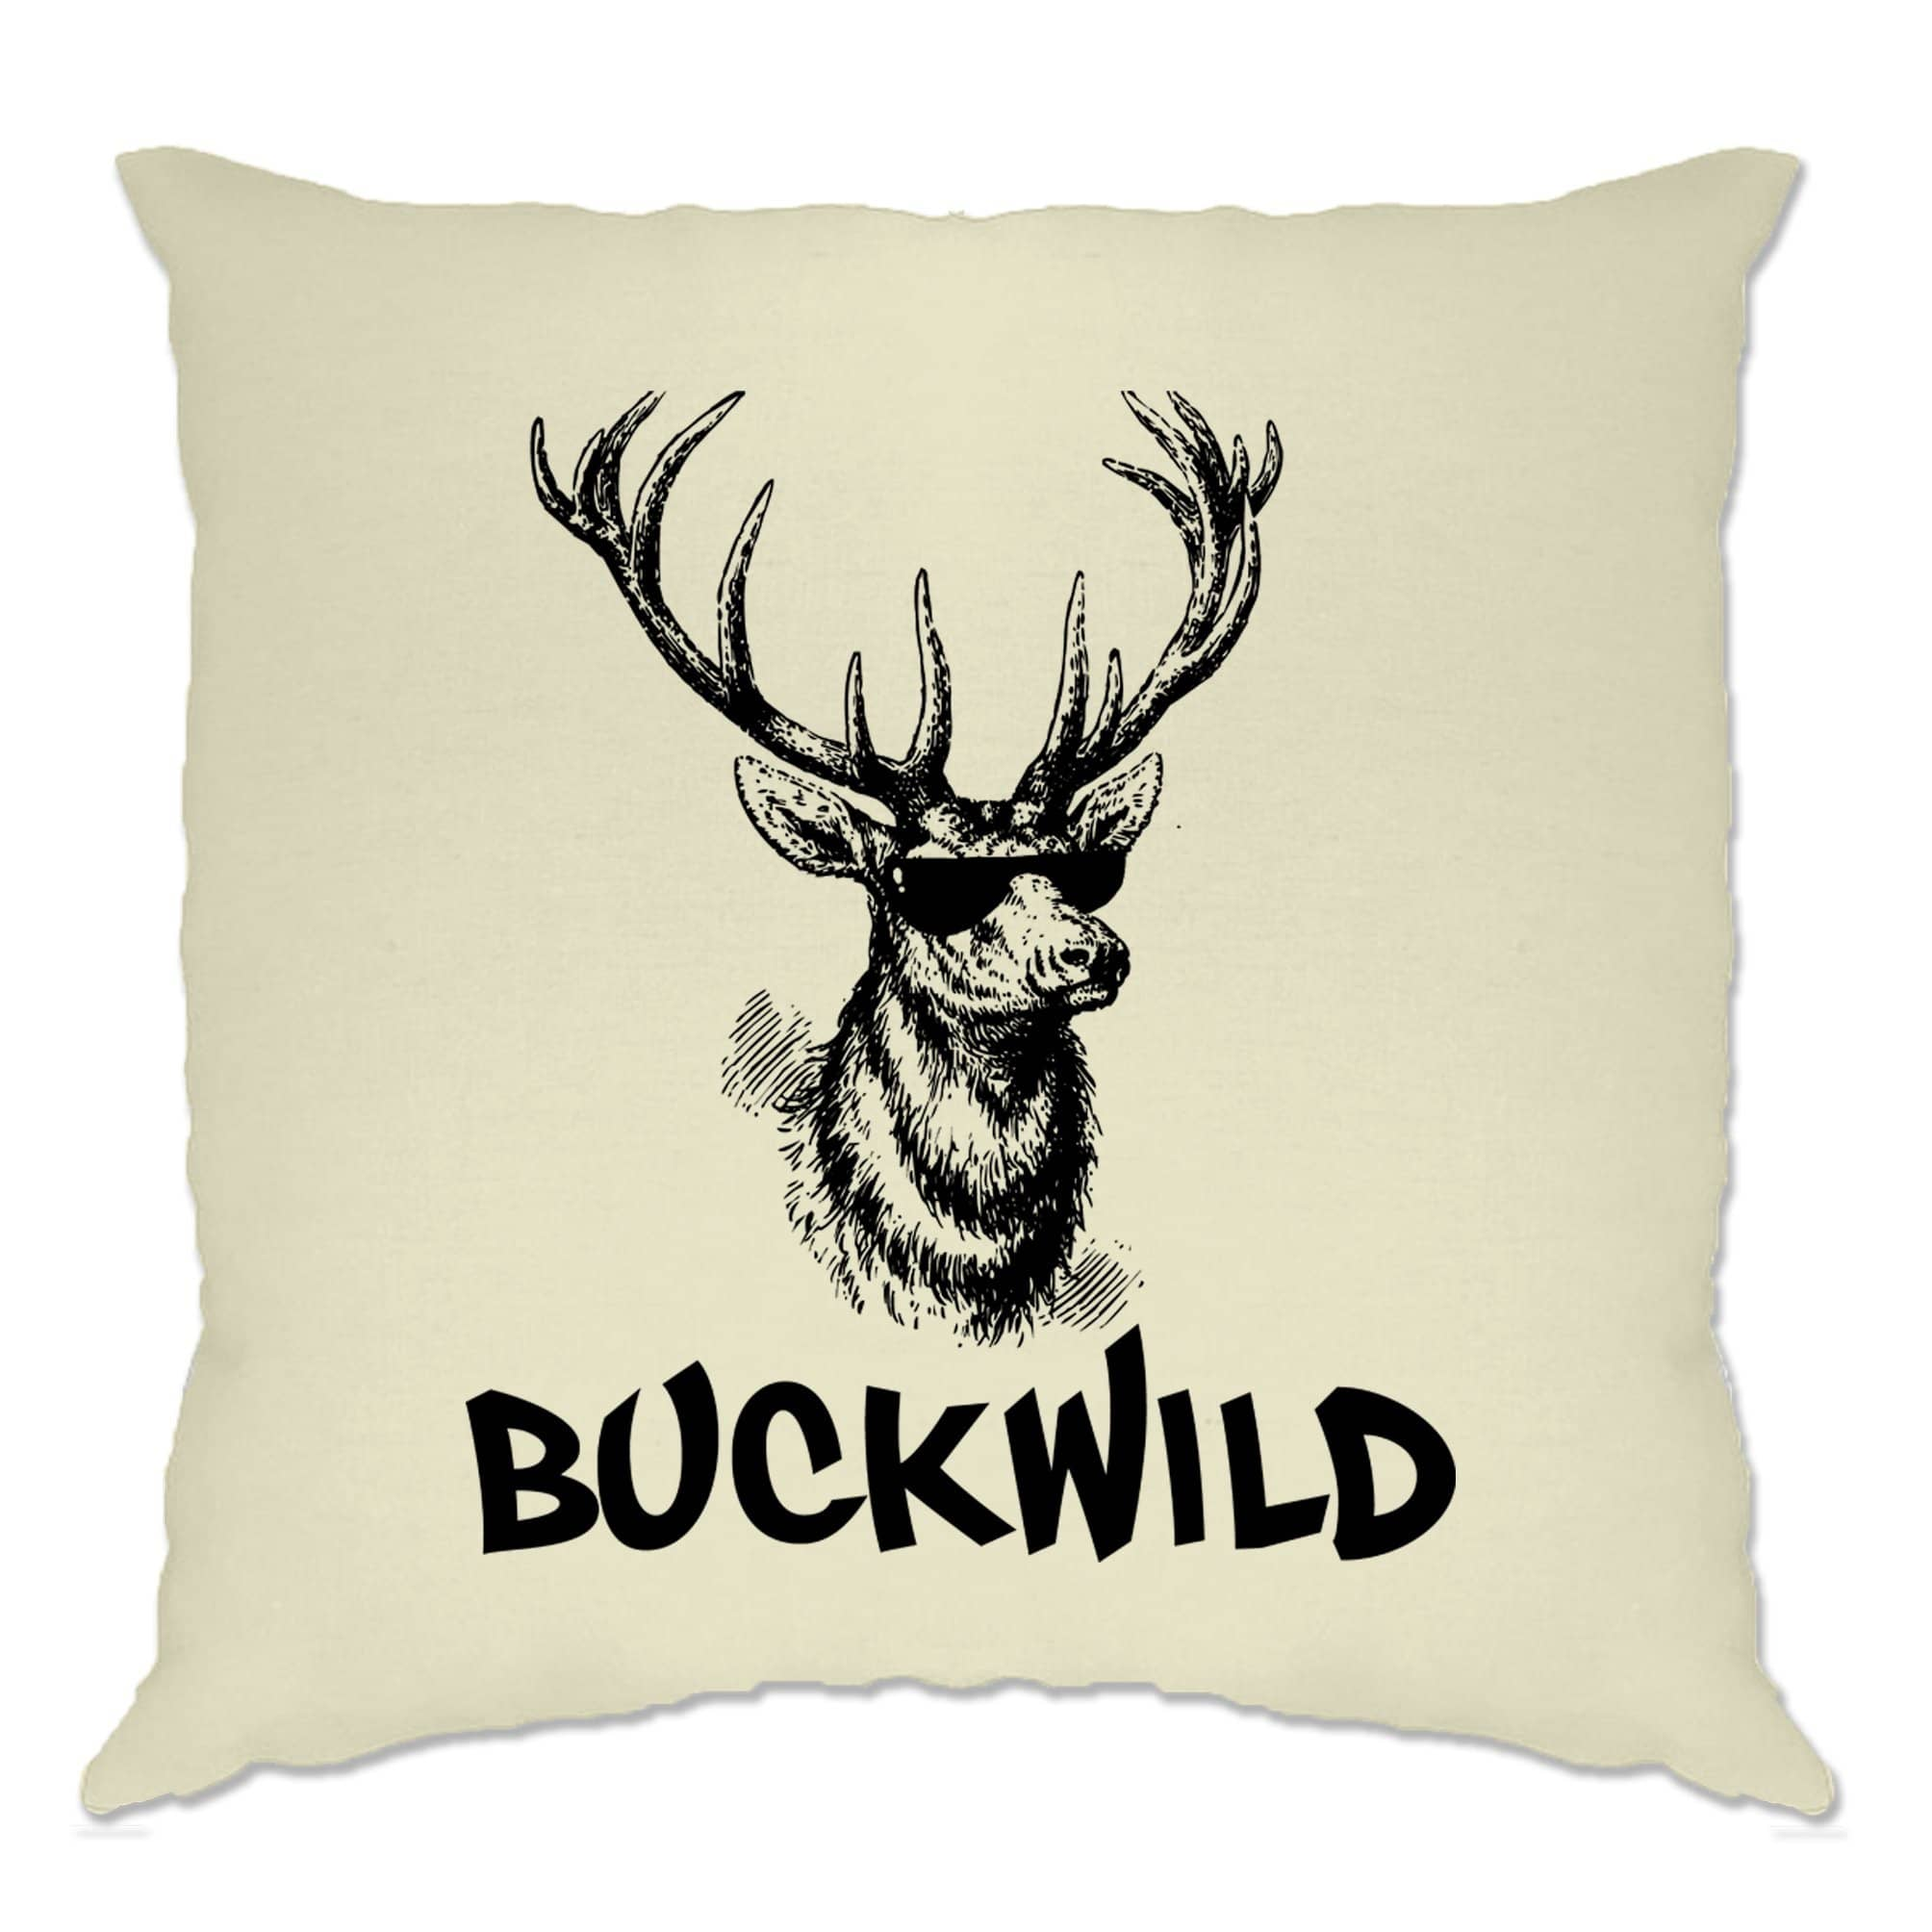 Novelty Christmas Cushion Cover Buckwild Cool Reindeer